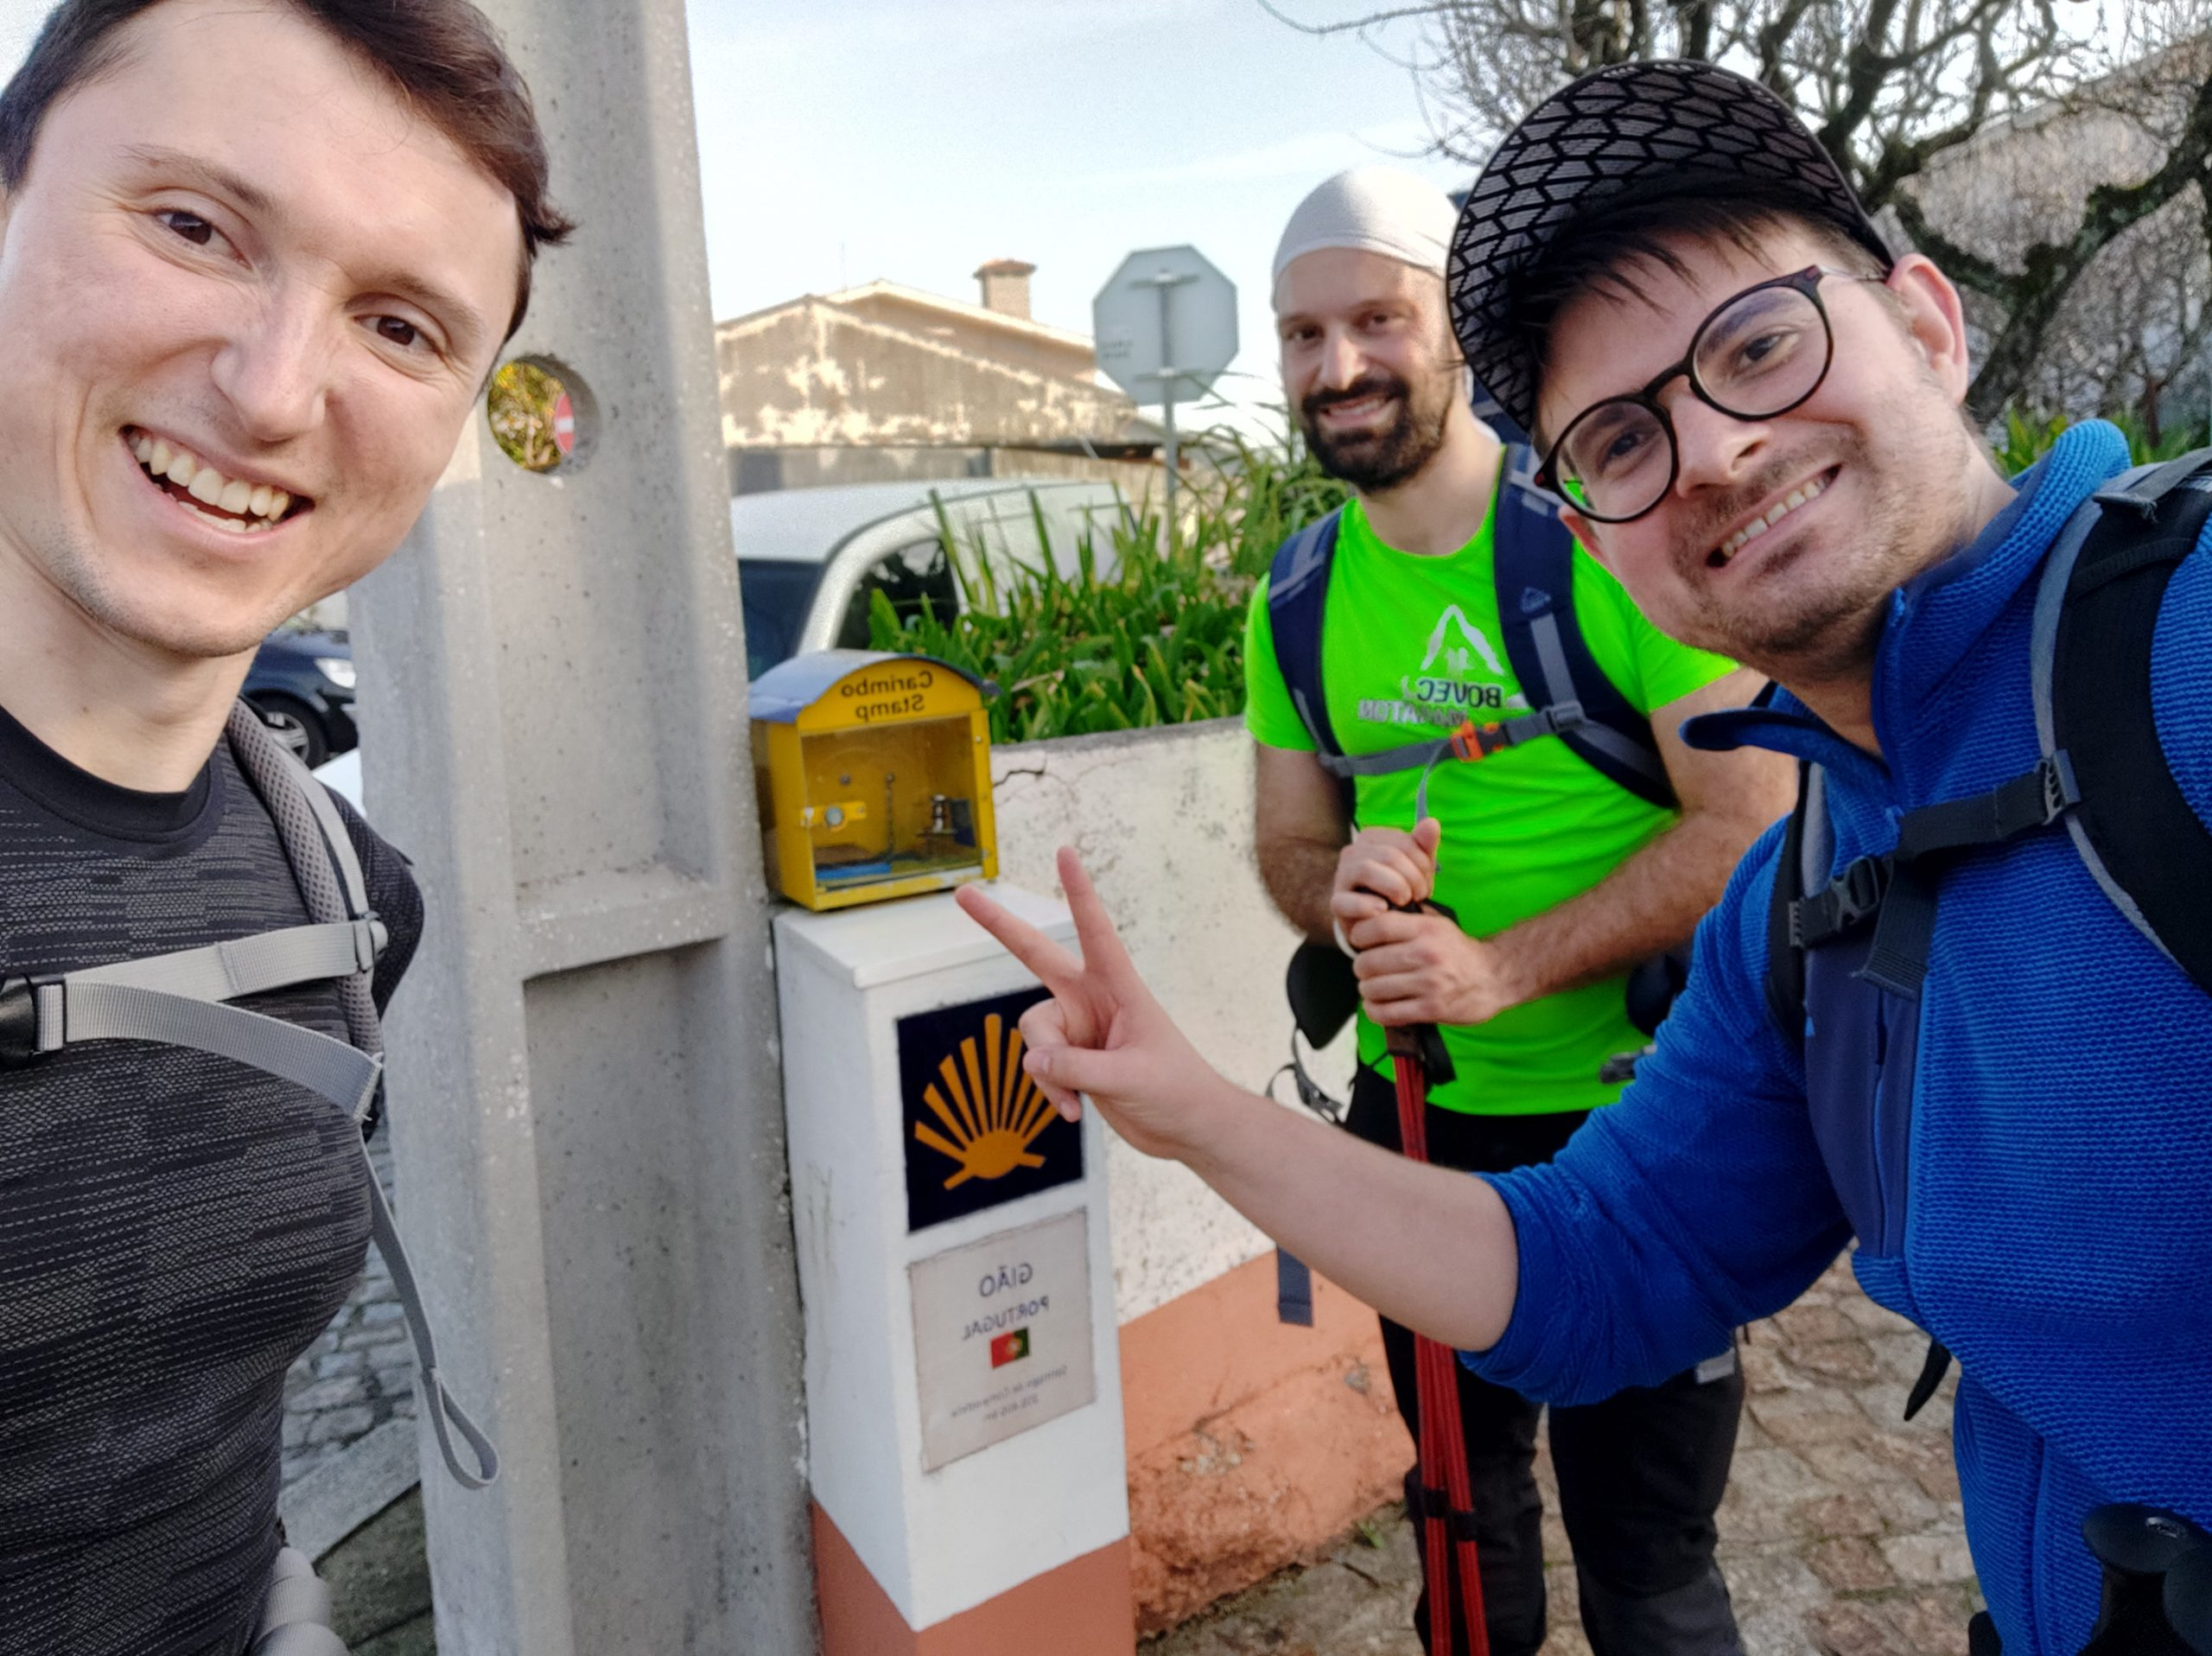 Doing a pilgrimage is a bit like being a Pokémon master, you have to catch stamps, at least 1, later even 2 per day, to get a diploma at the end. Usually they are found in stores, bars but from time to time, we found one in the open, by the road. This was our first stamp.